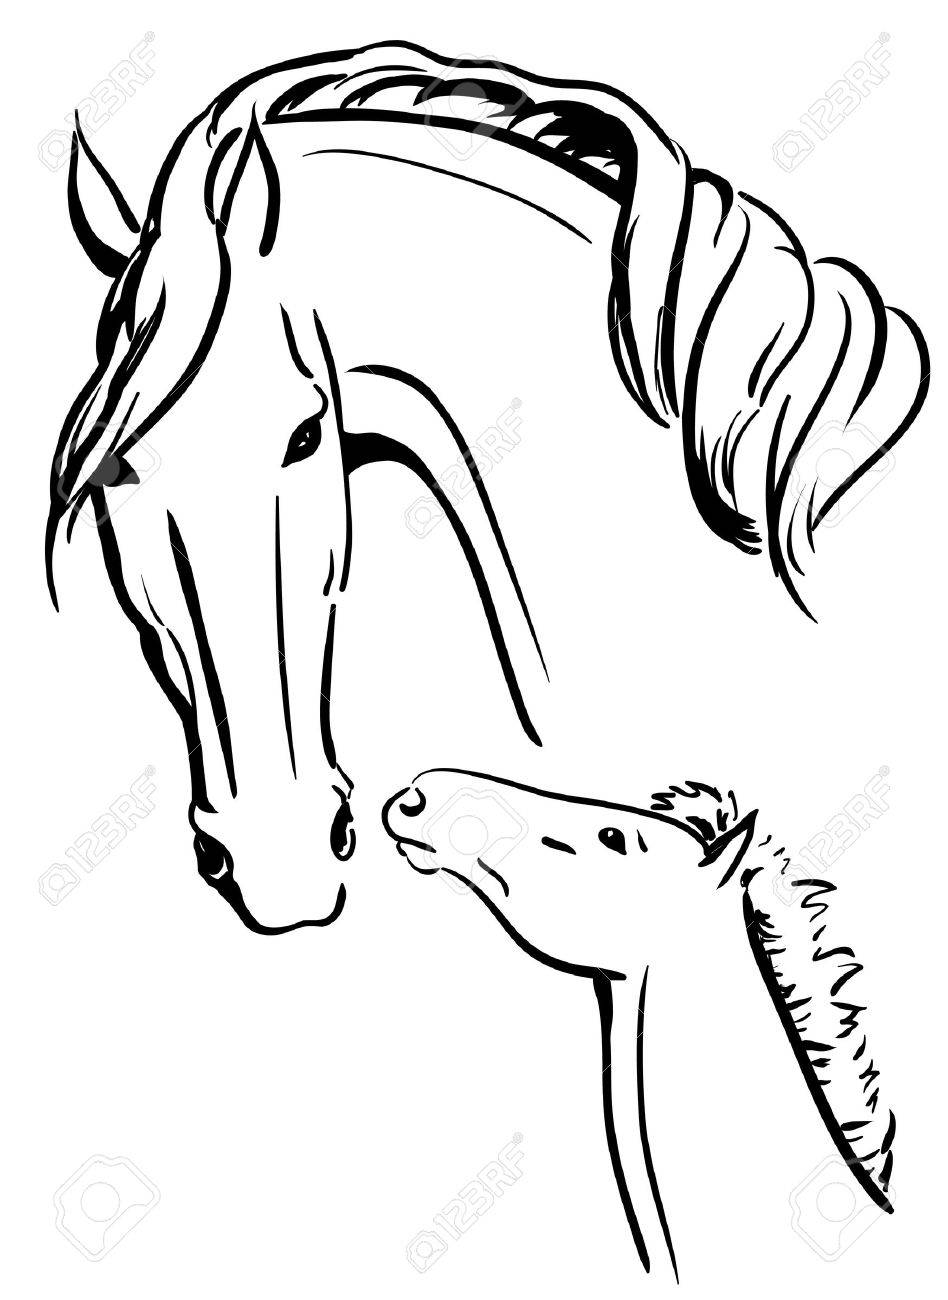 mare and foal black and white royalty free cliparts vectors and RE MAX mare and foal black and white stock vector 17068508